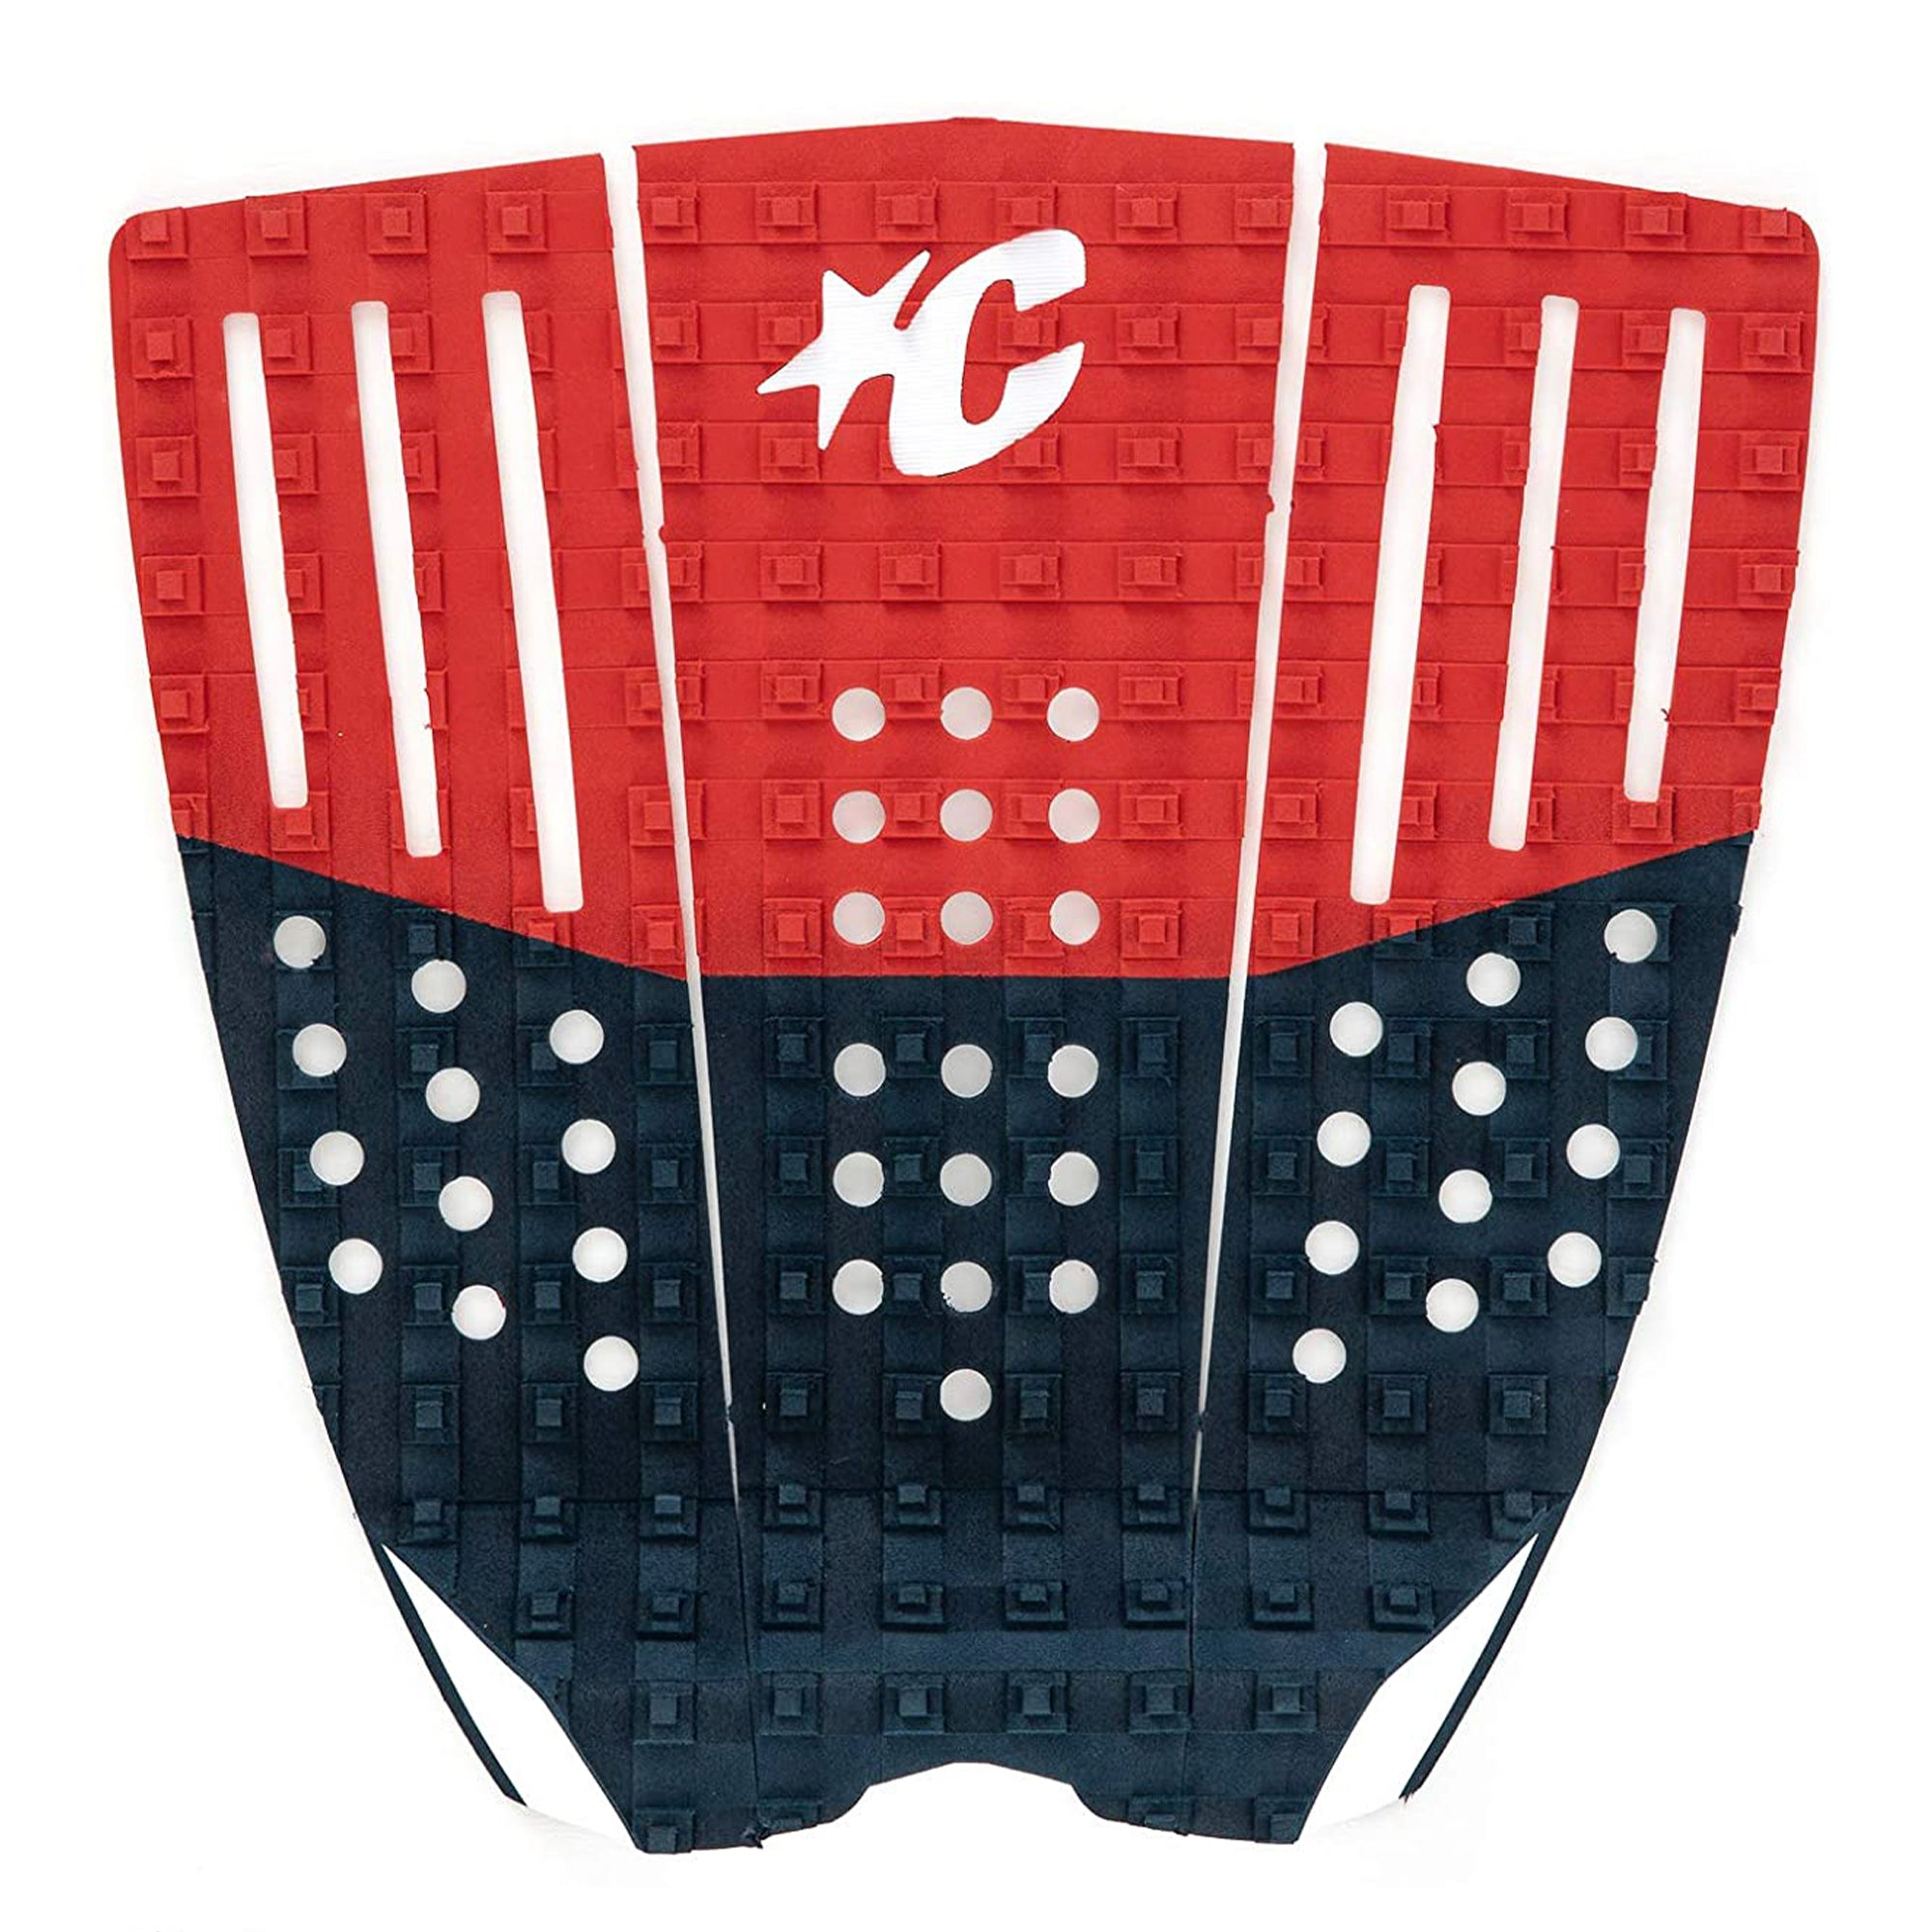 Creatures of Leisure Reliance III Block Traction Pad - Navy/Red/White